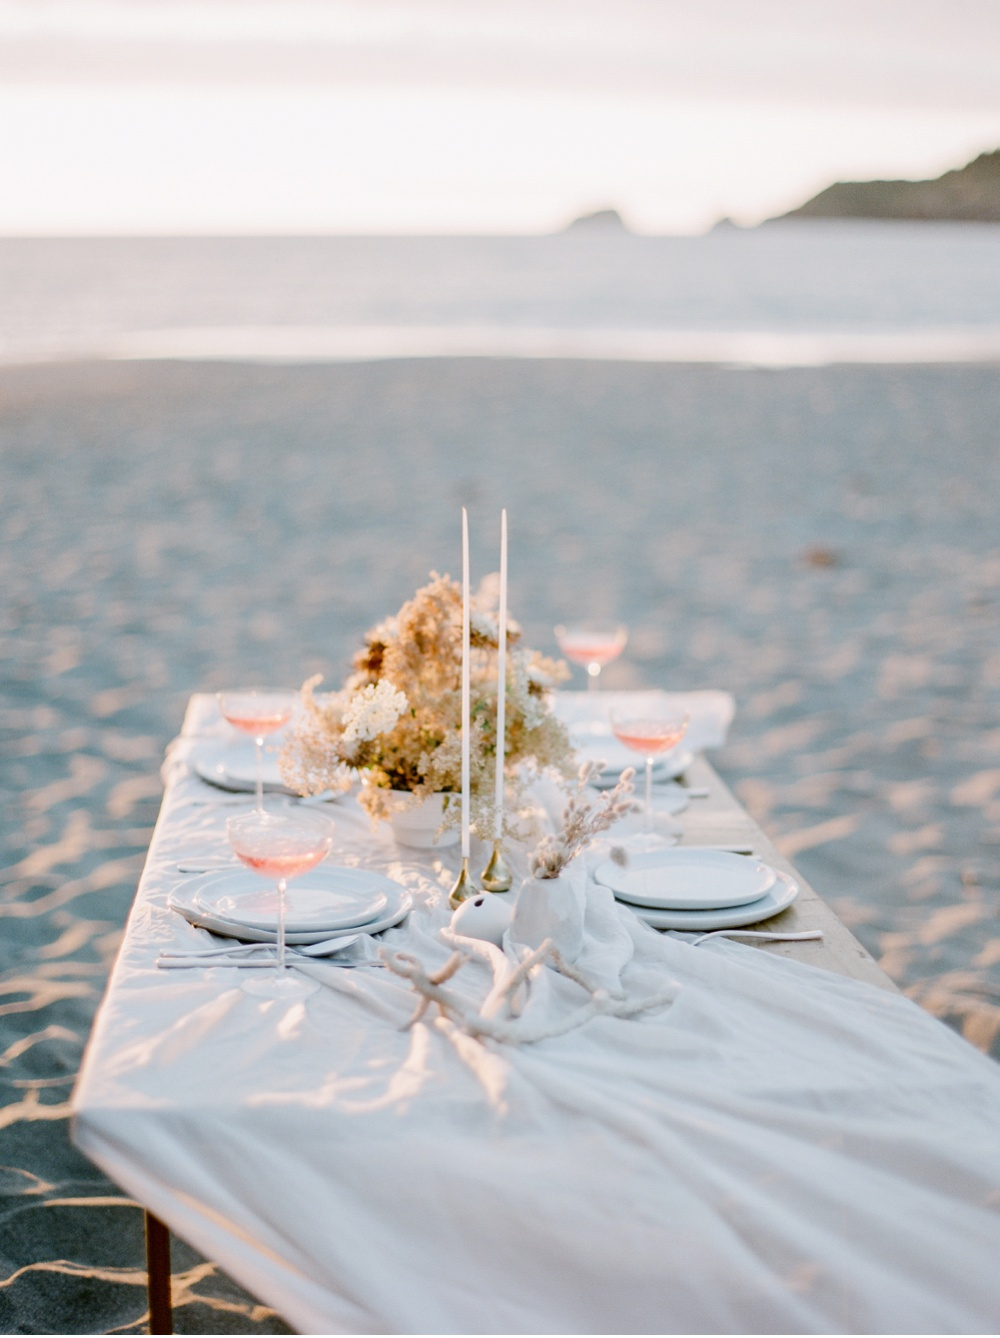 Destination_Wedding_Photographer_France_Italy©MadalinaSheldon_0005.jpg